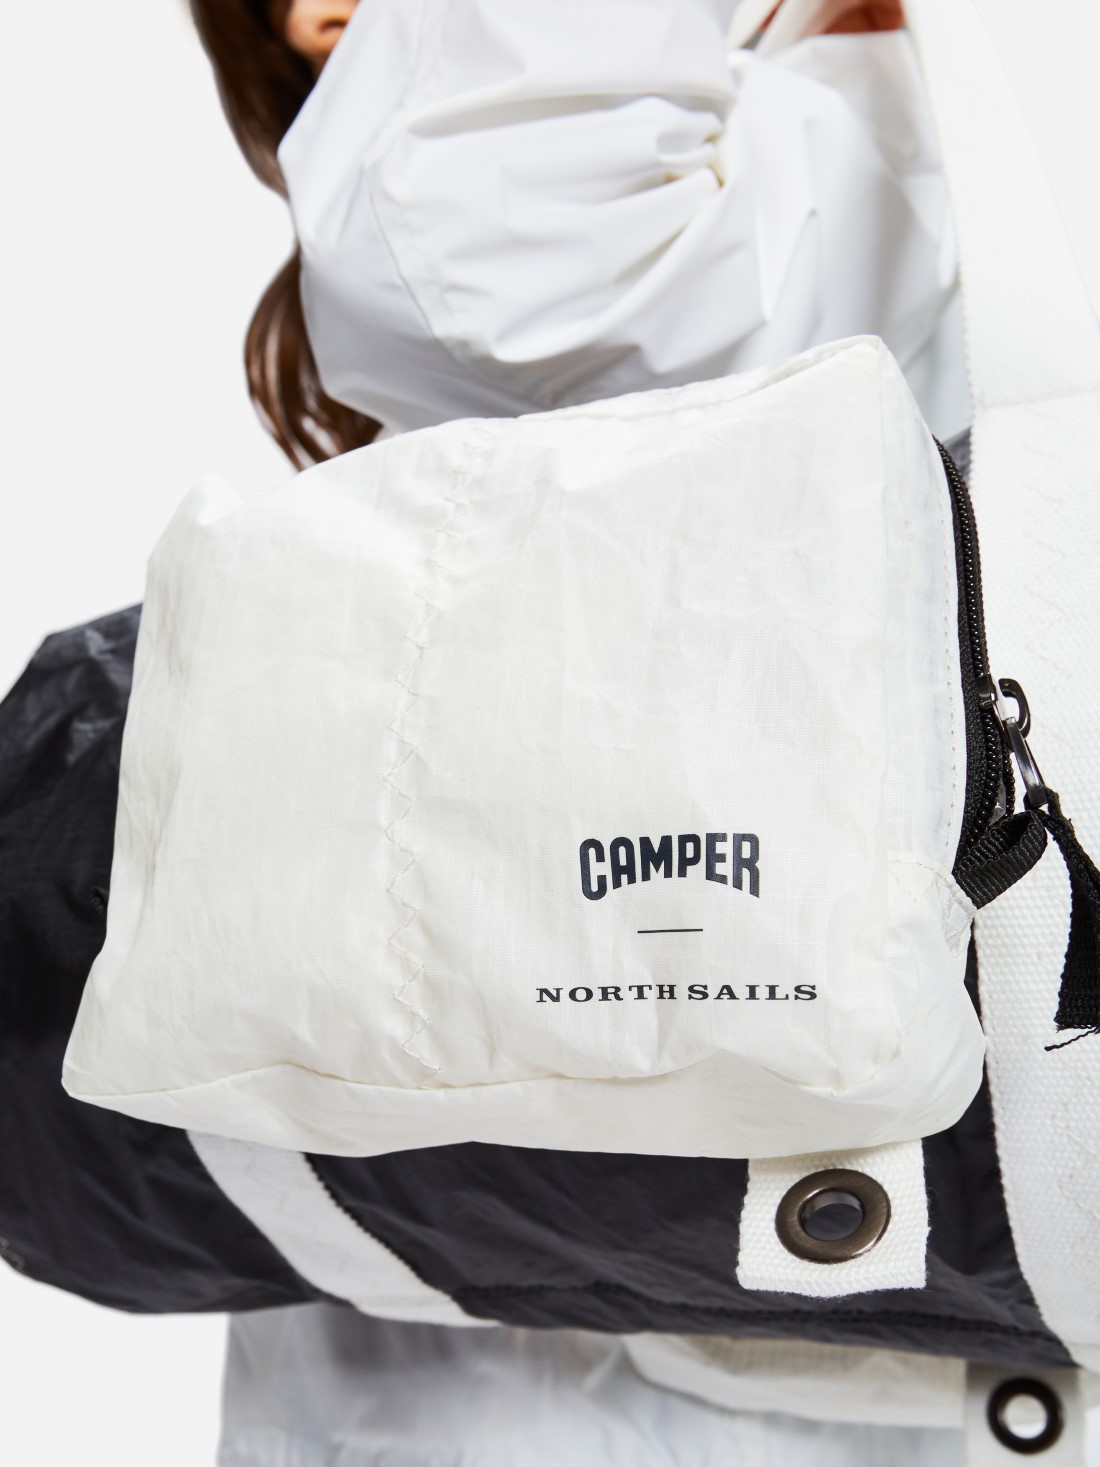 Camper x North Sails Printemps-Été 2021